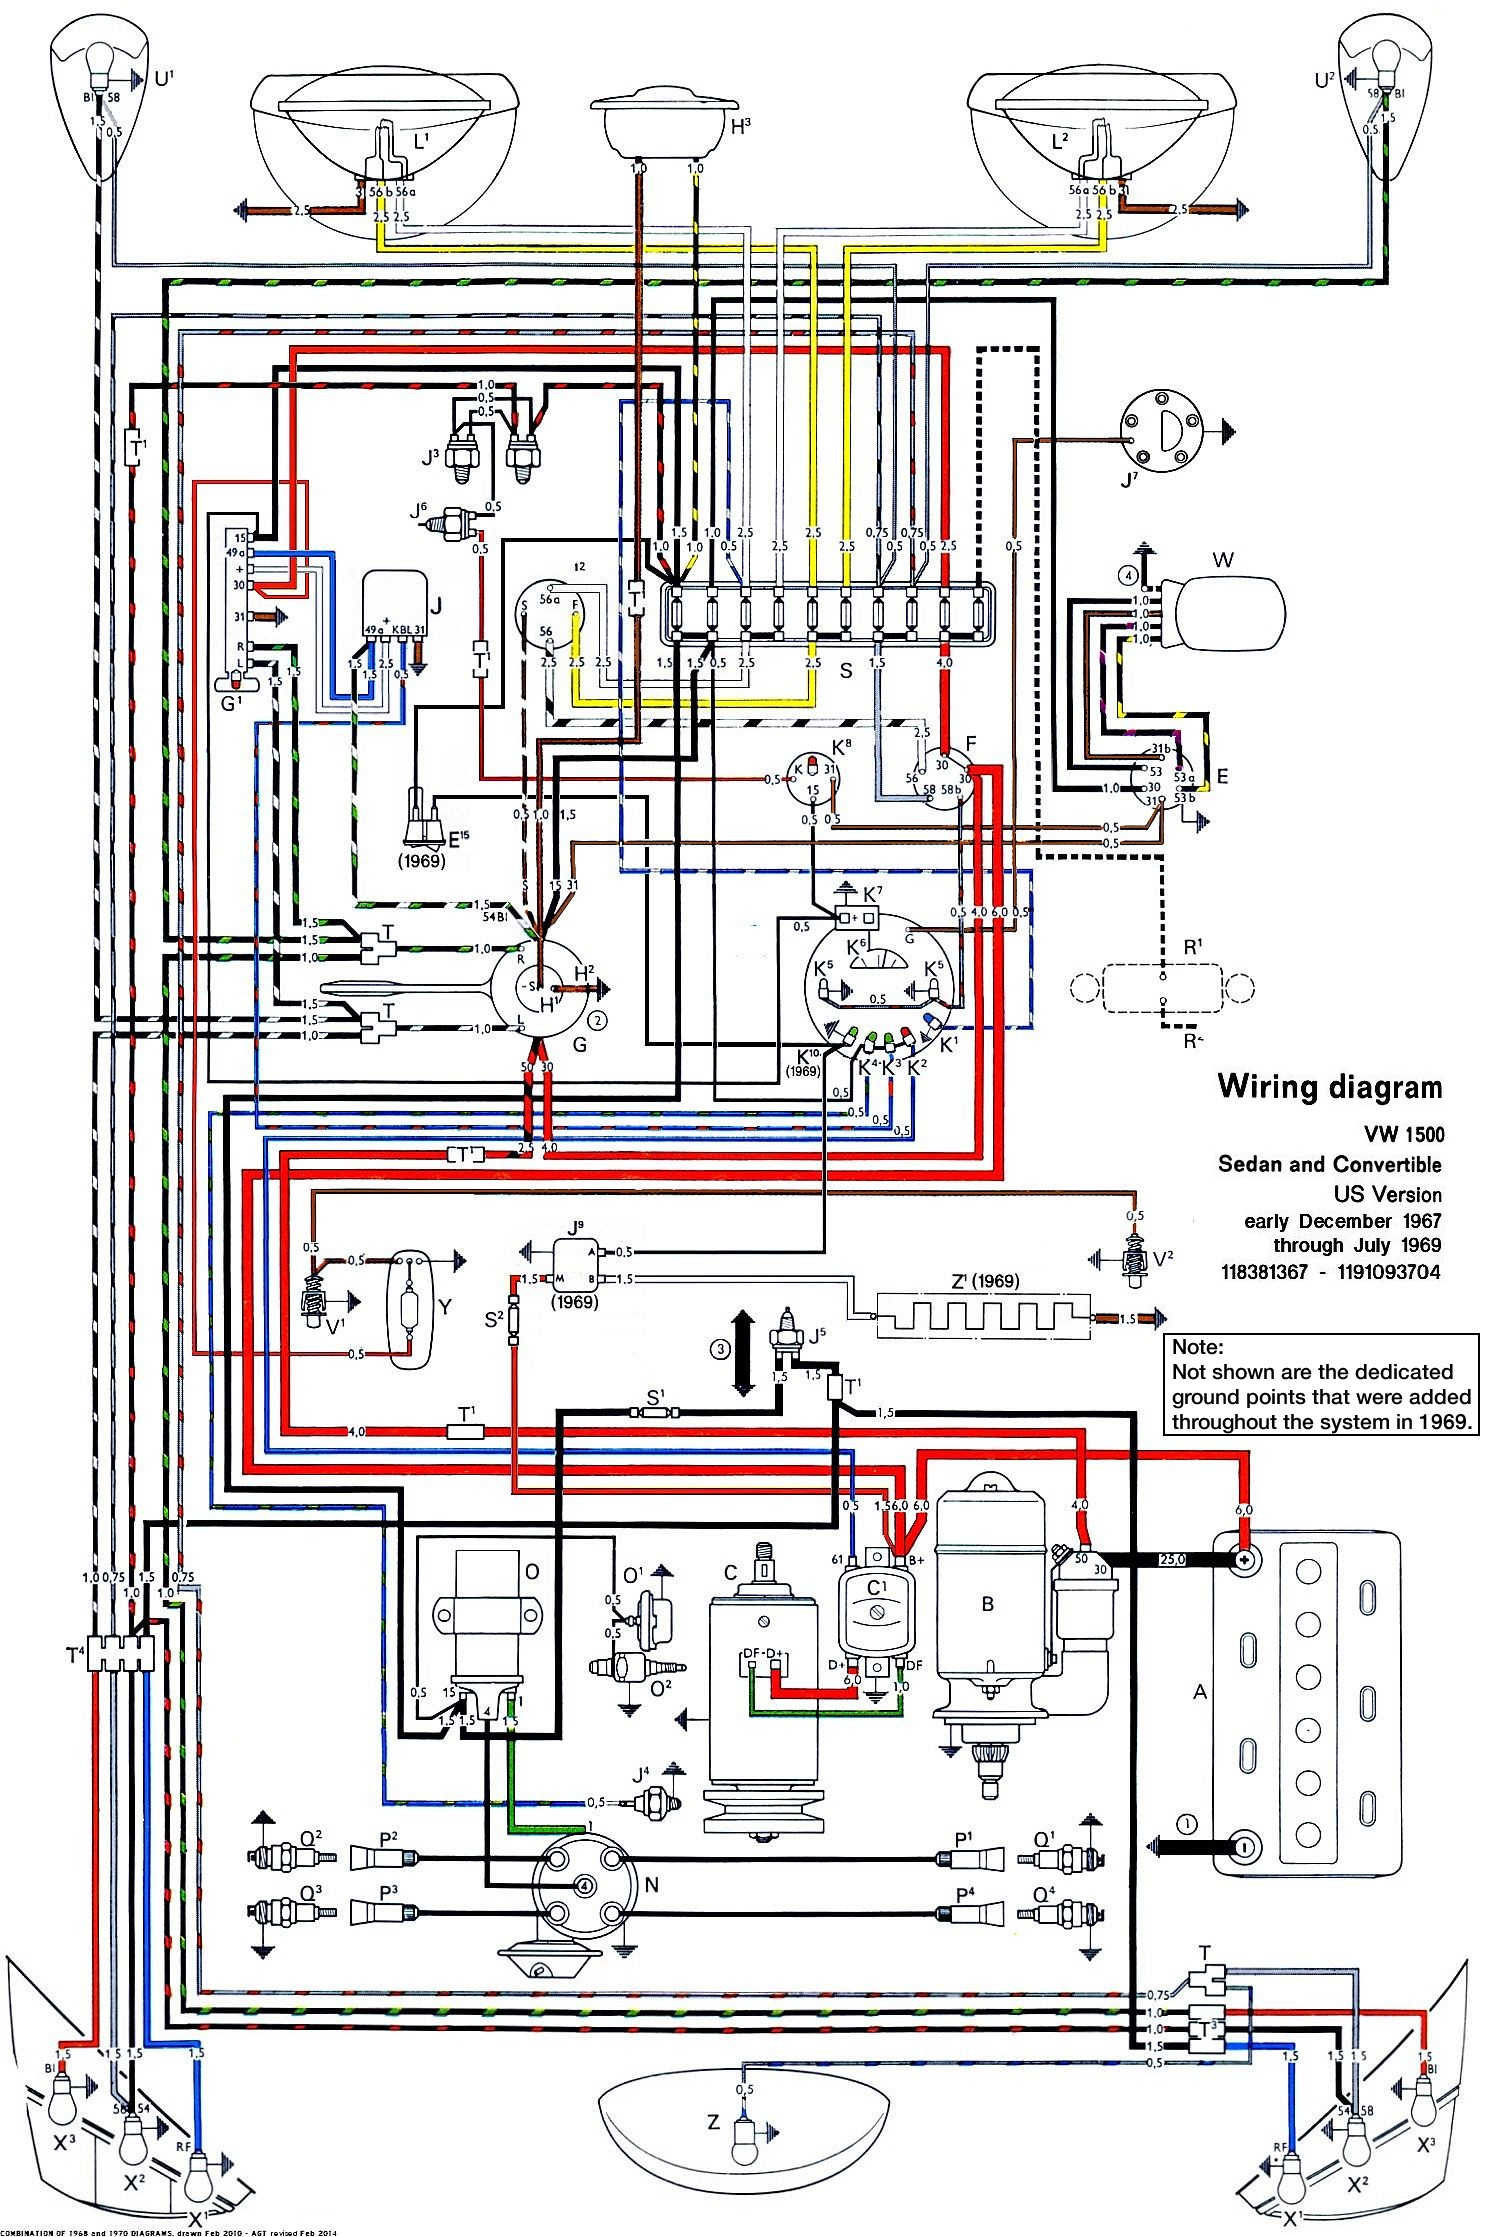 1970 beetle wiring diagram california court system 1974 vw fuse box free engine image for user